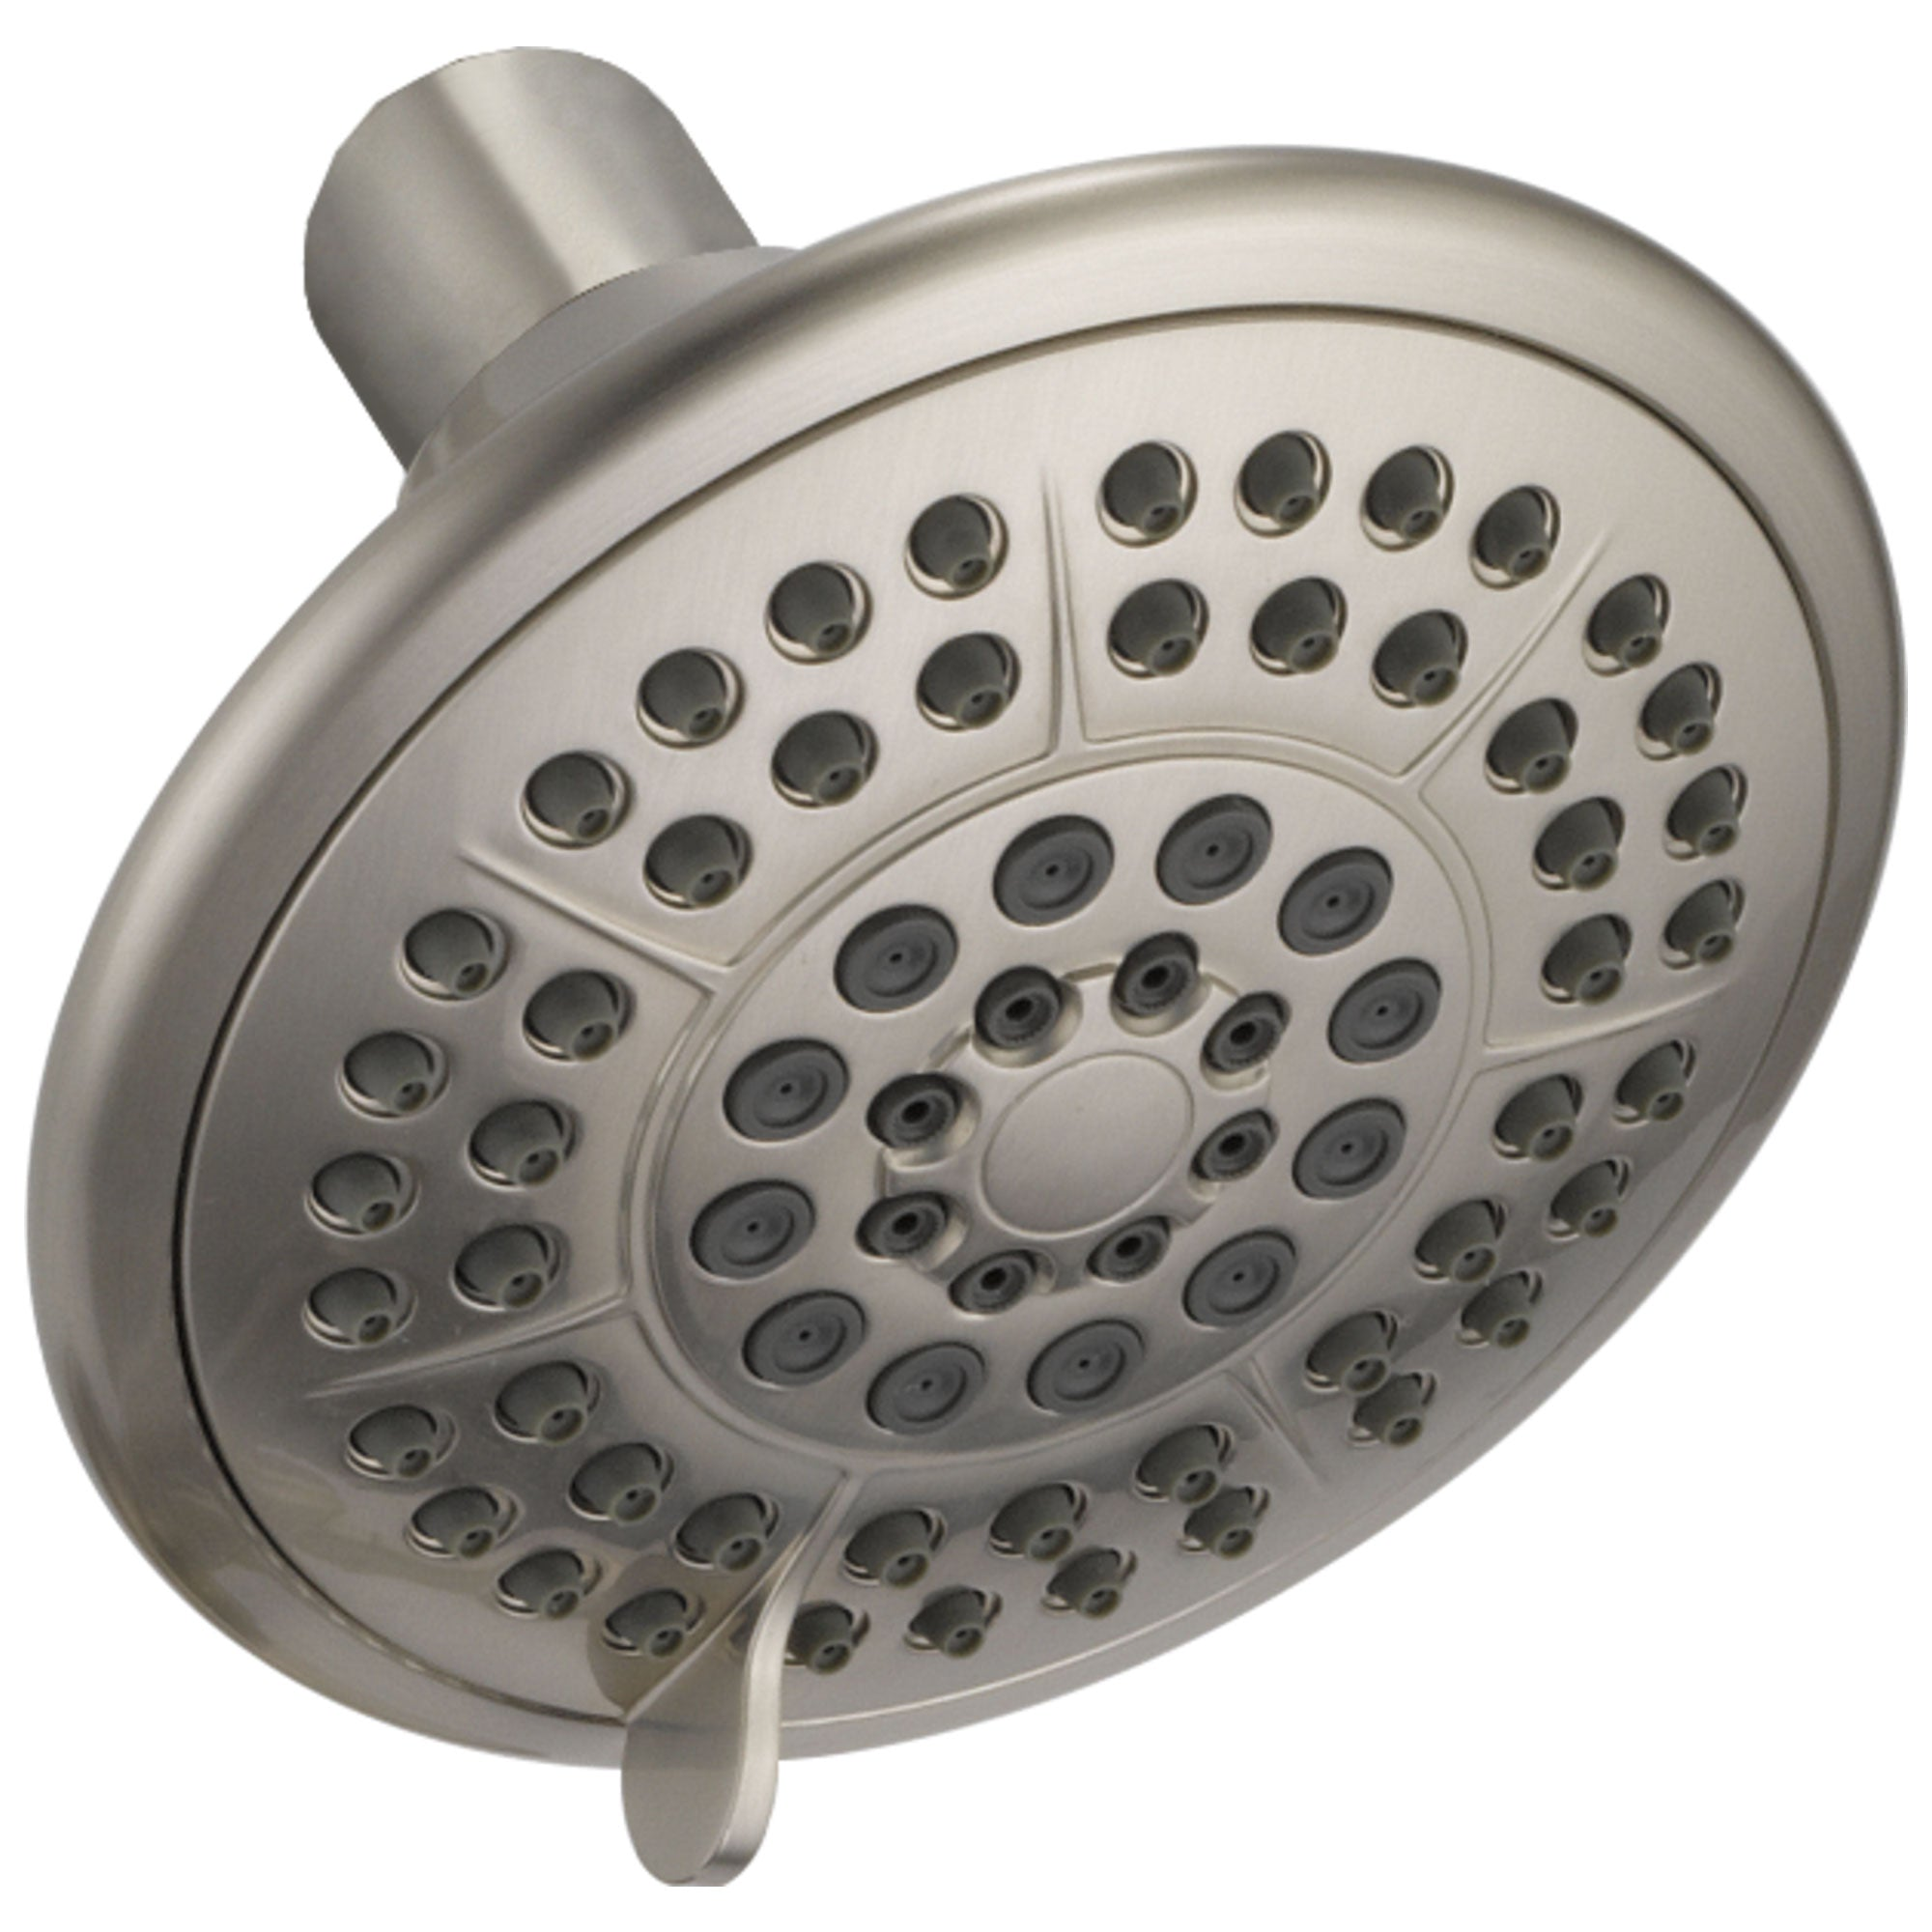 Delta Universal Showering Components Collection Stainless Steel Finish 5-Setting Touch-Clean Shower Head DRP78575SS